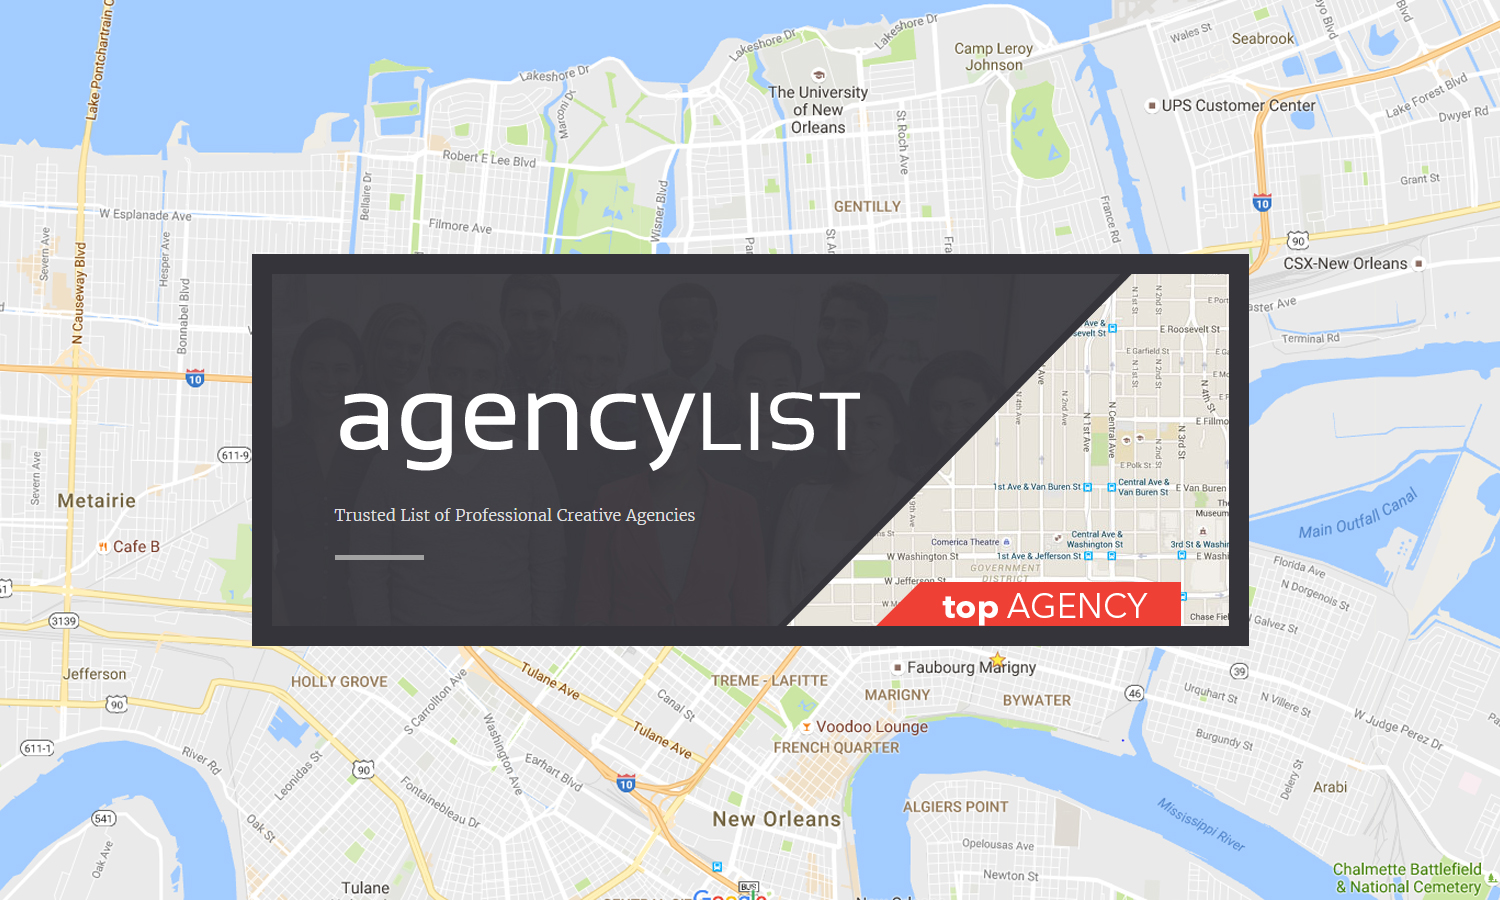 Culturecast named Top Agency in New Orleans by agencyLIST!